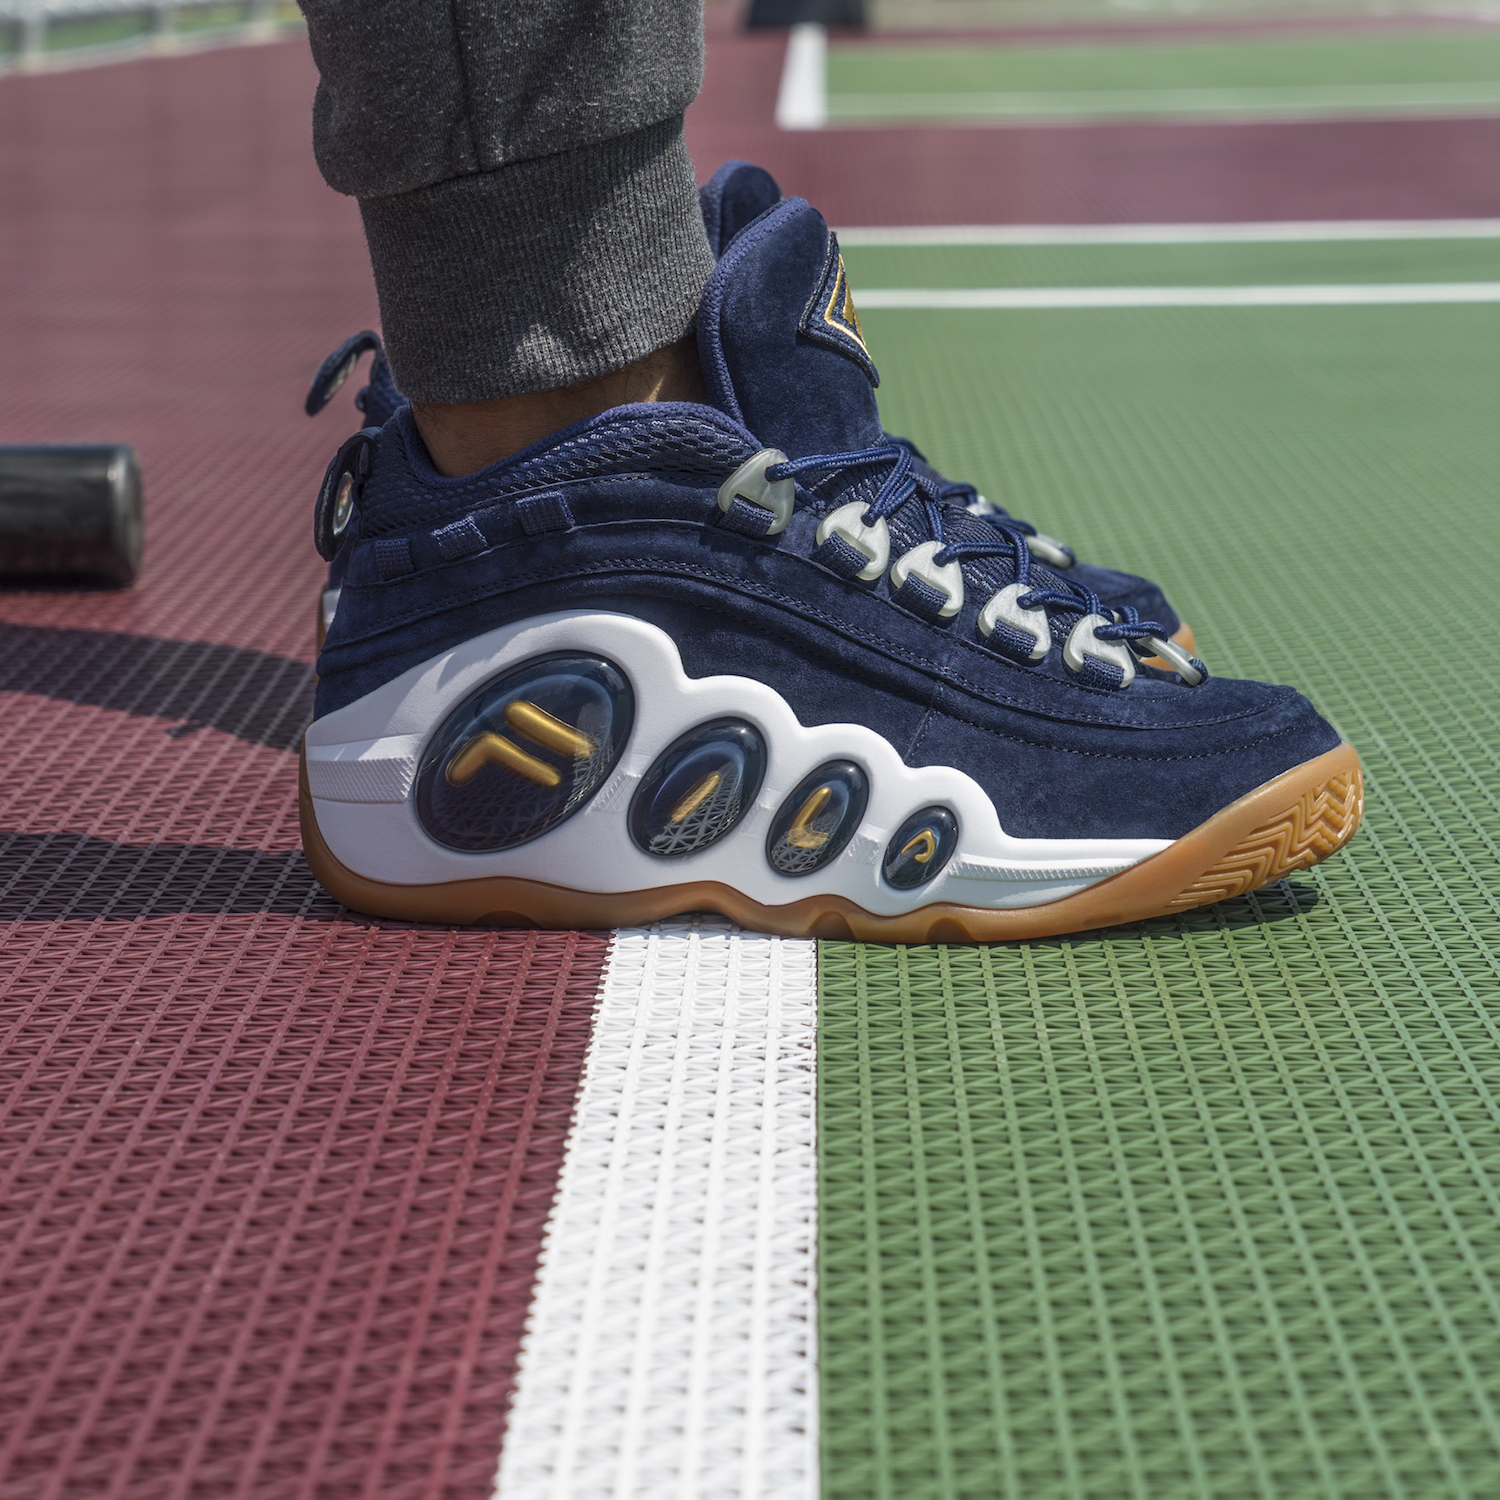 FILA Bubbles royal beginnings 5